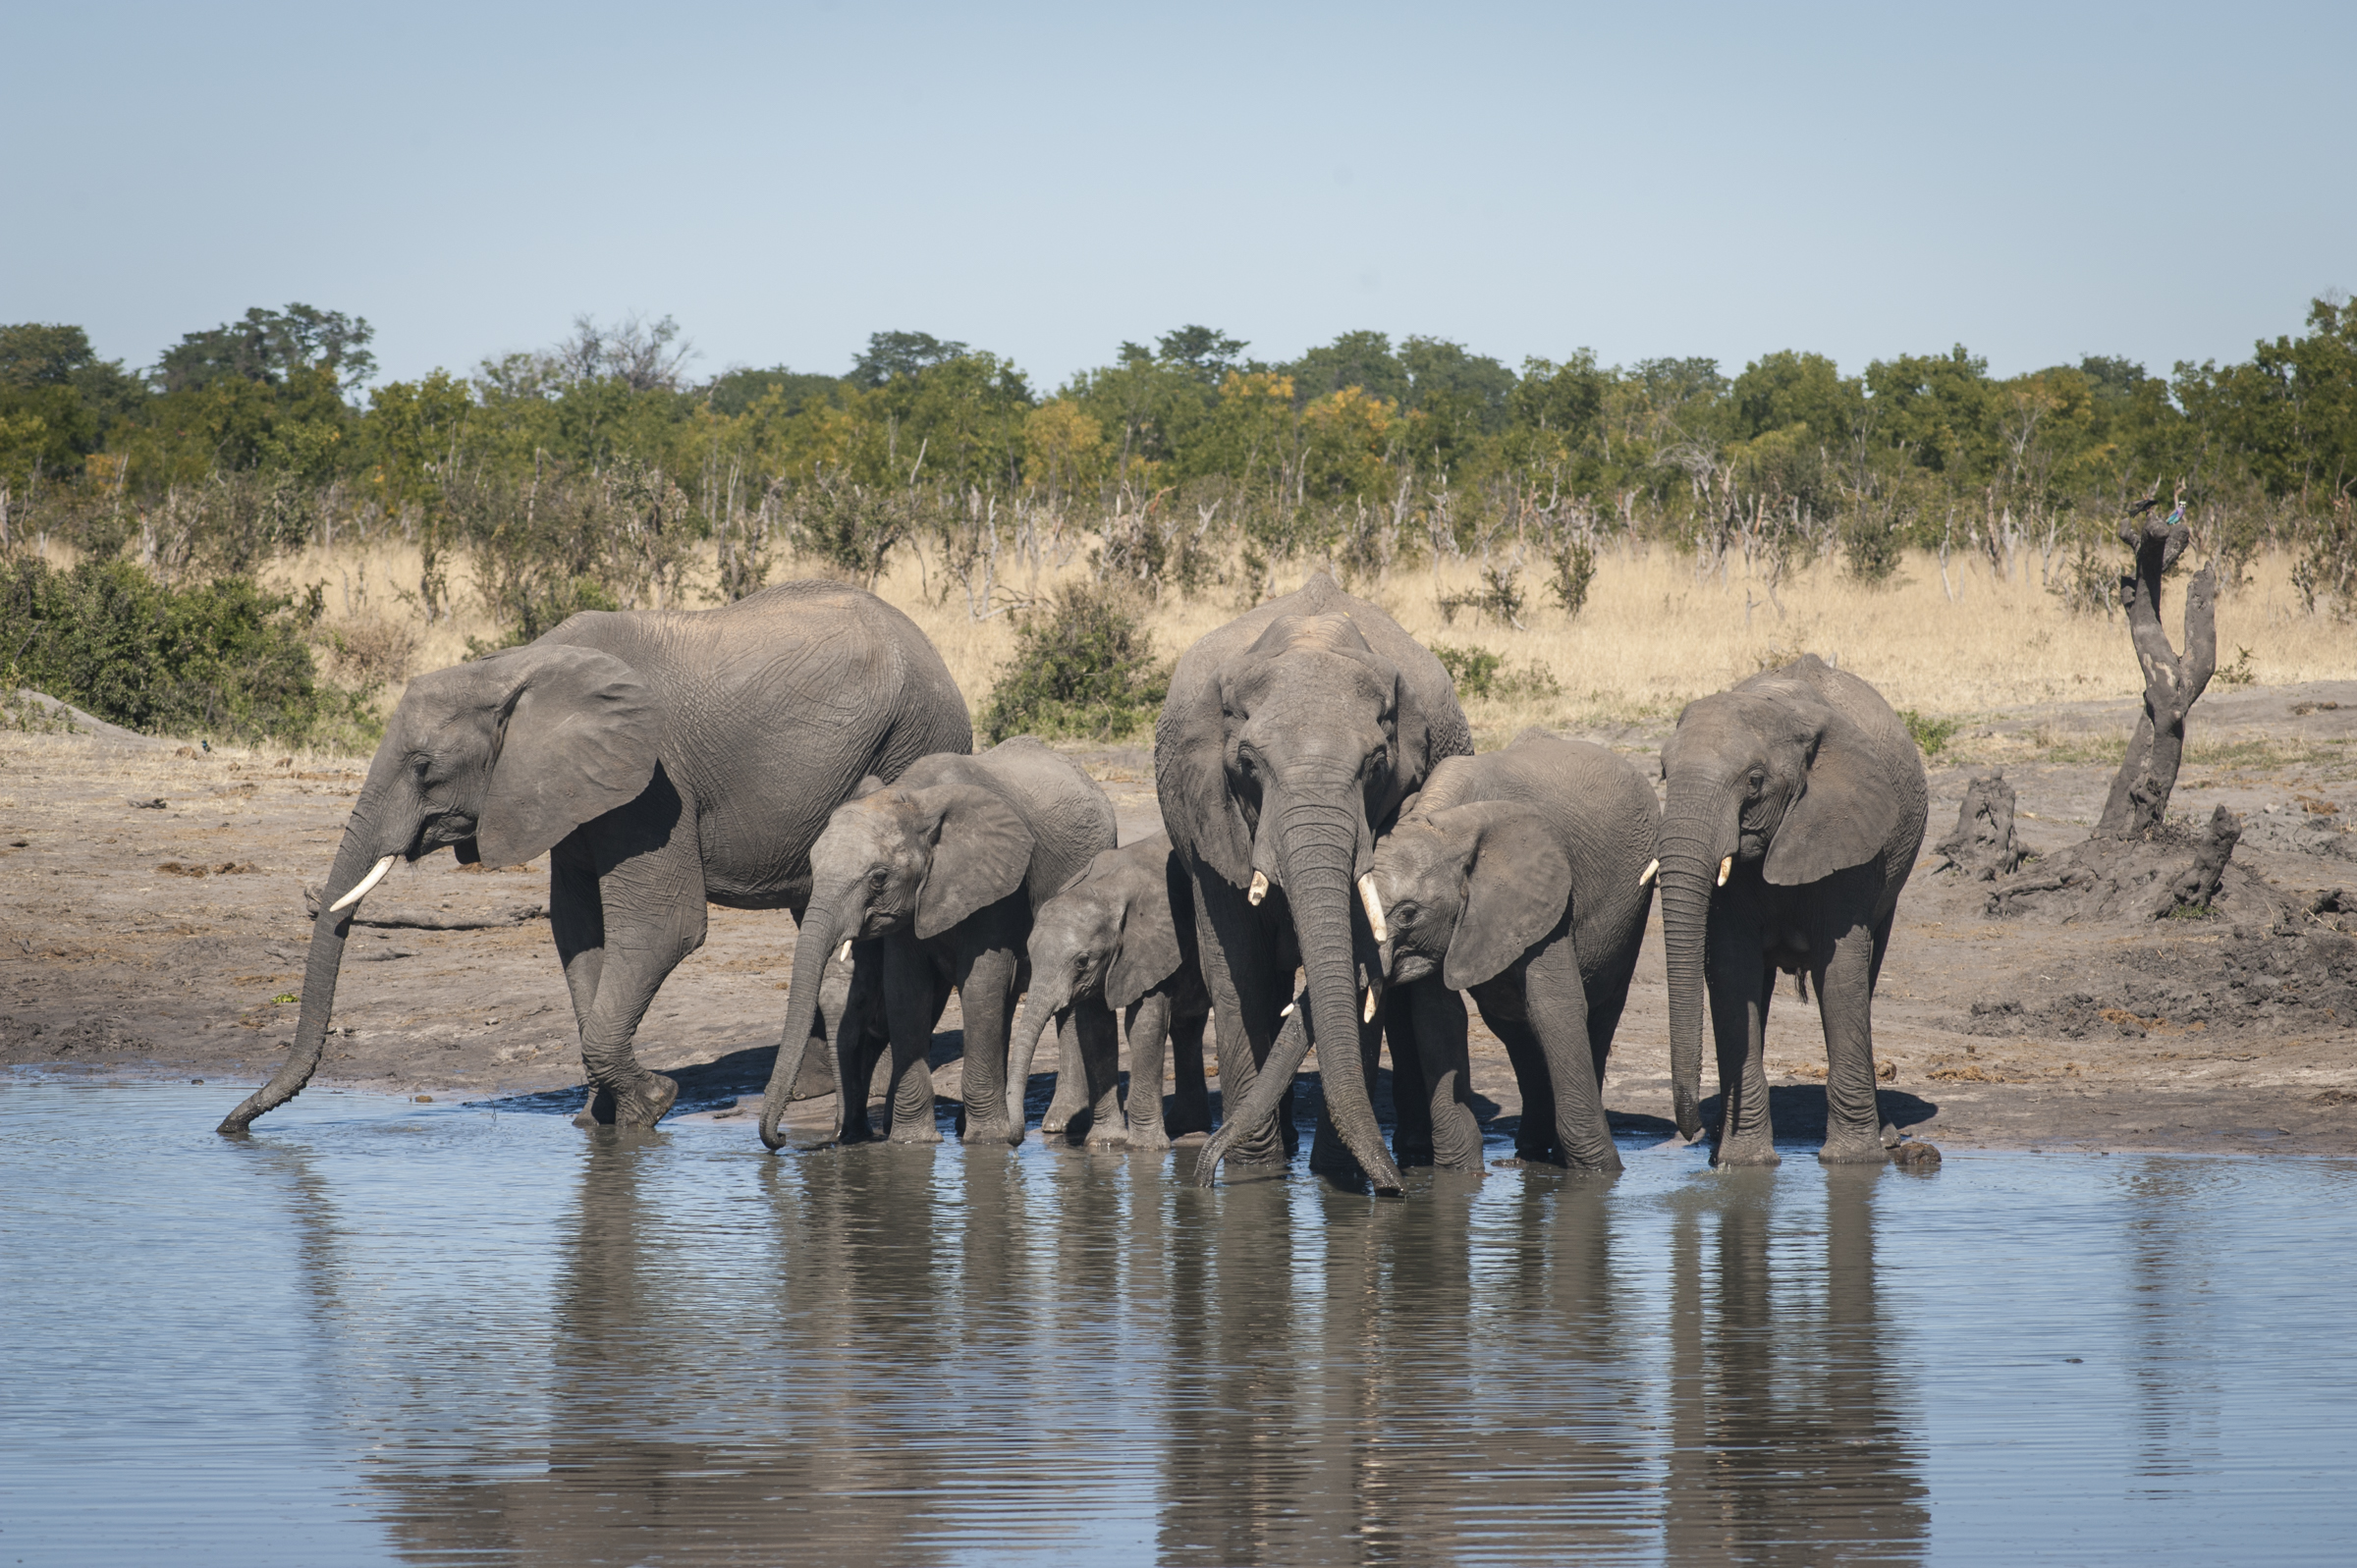 A typical scene at a waterhole, photo by Anton Crone